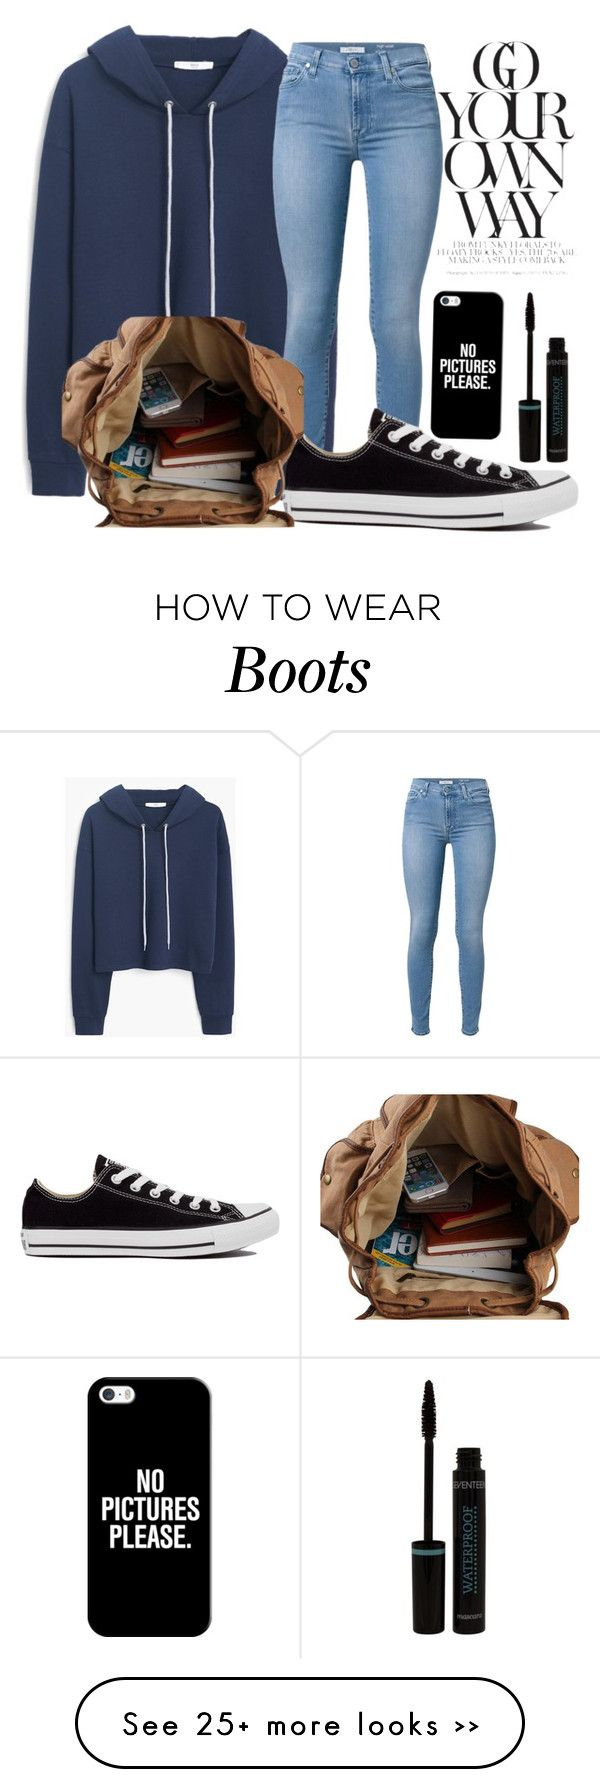 """Go your own way"" by hahafashionhaha on Polyvore featuring MANGO, 7 For All Mankind, Converse and Casetify"